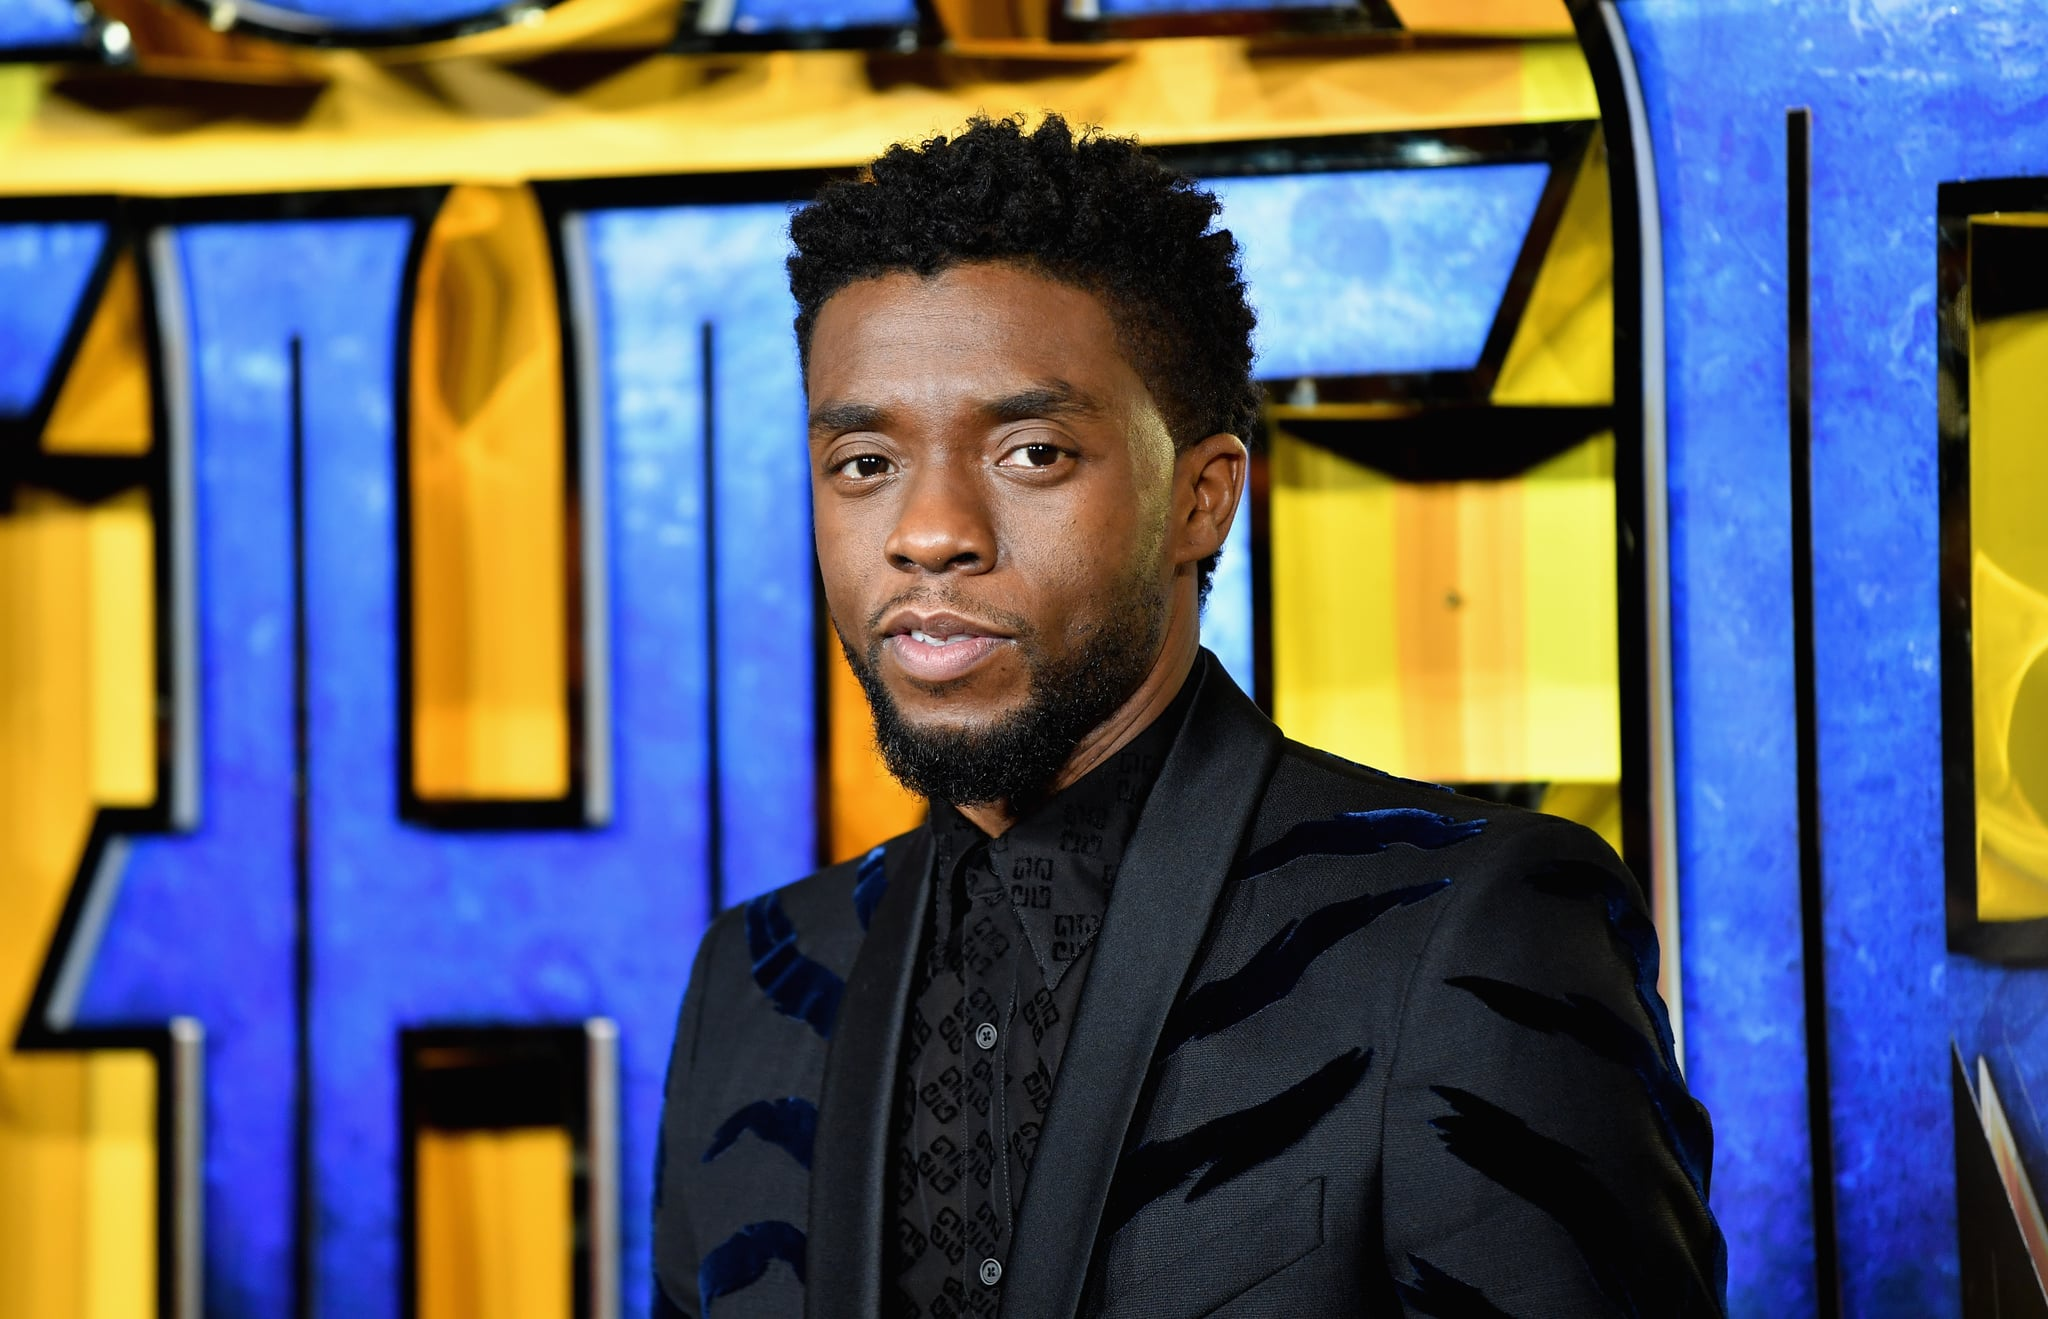 LONDON, ENGLAND - FEBRUARY 08:  Chadwick Boseman attends the European Premiere of Marvel Studios'